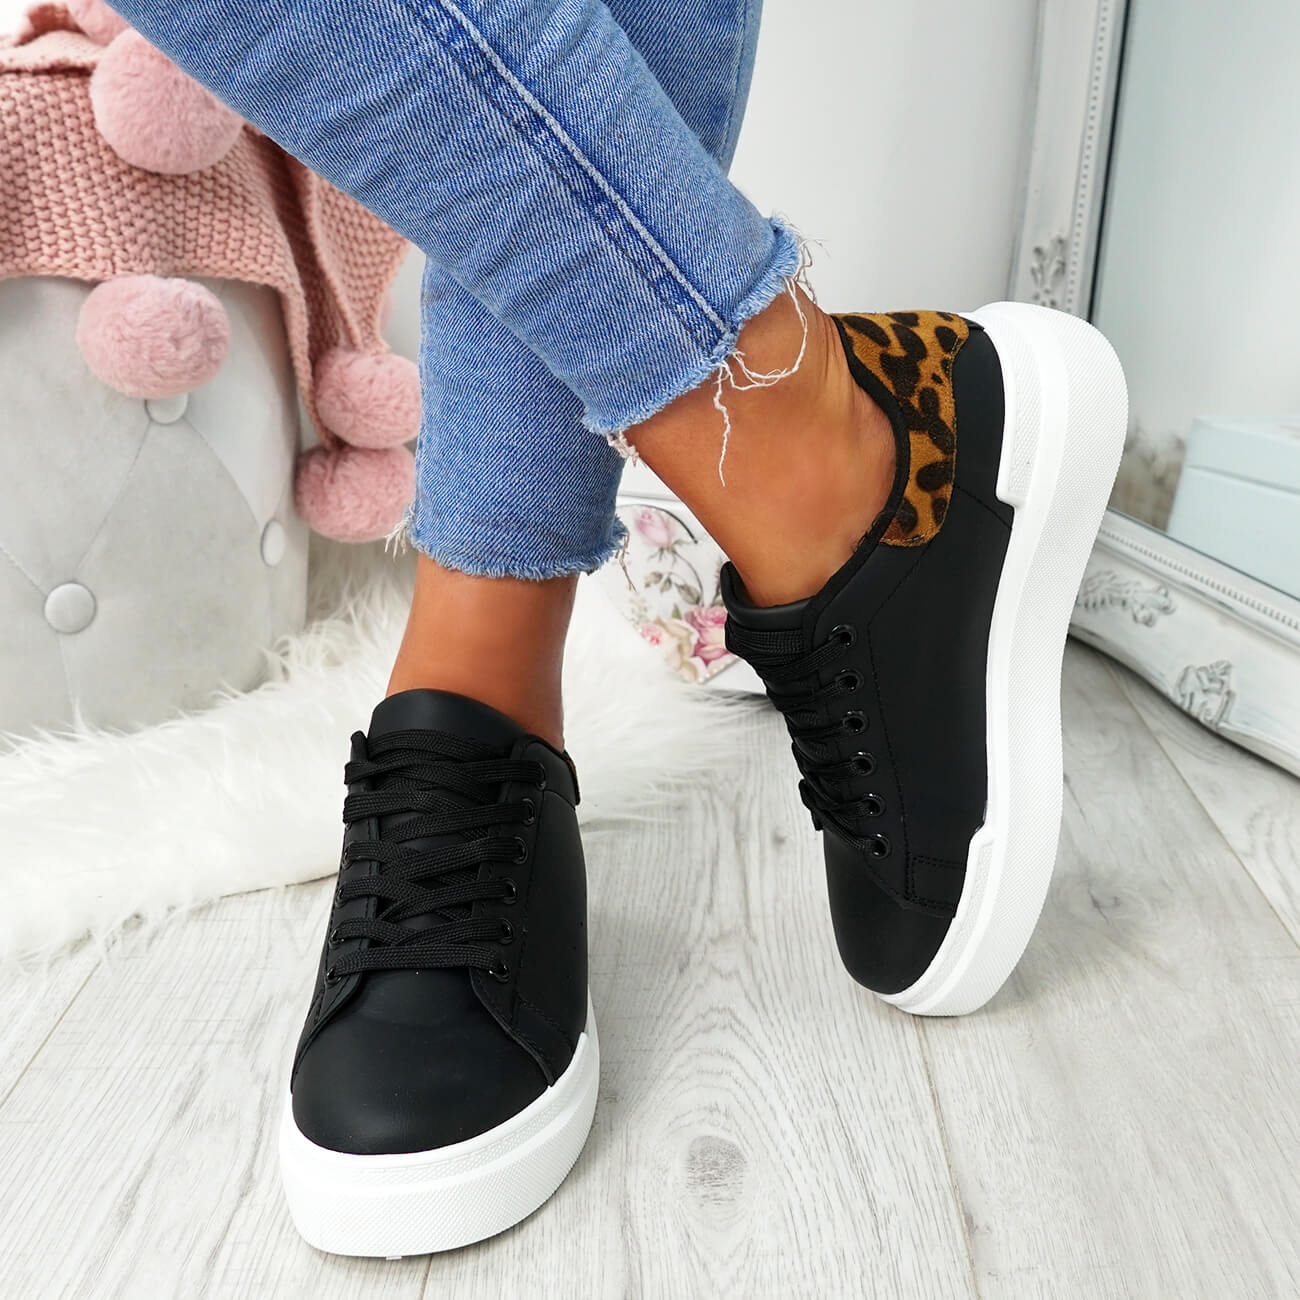 WOMENS-LADIES-LACE-UP-PLIMSOLL-SNEAKERS-CROC-SNAKE-TRAINERS-CASUAL-SHOES-SIZE thumbnail 10